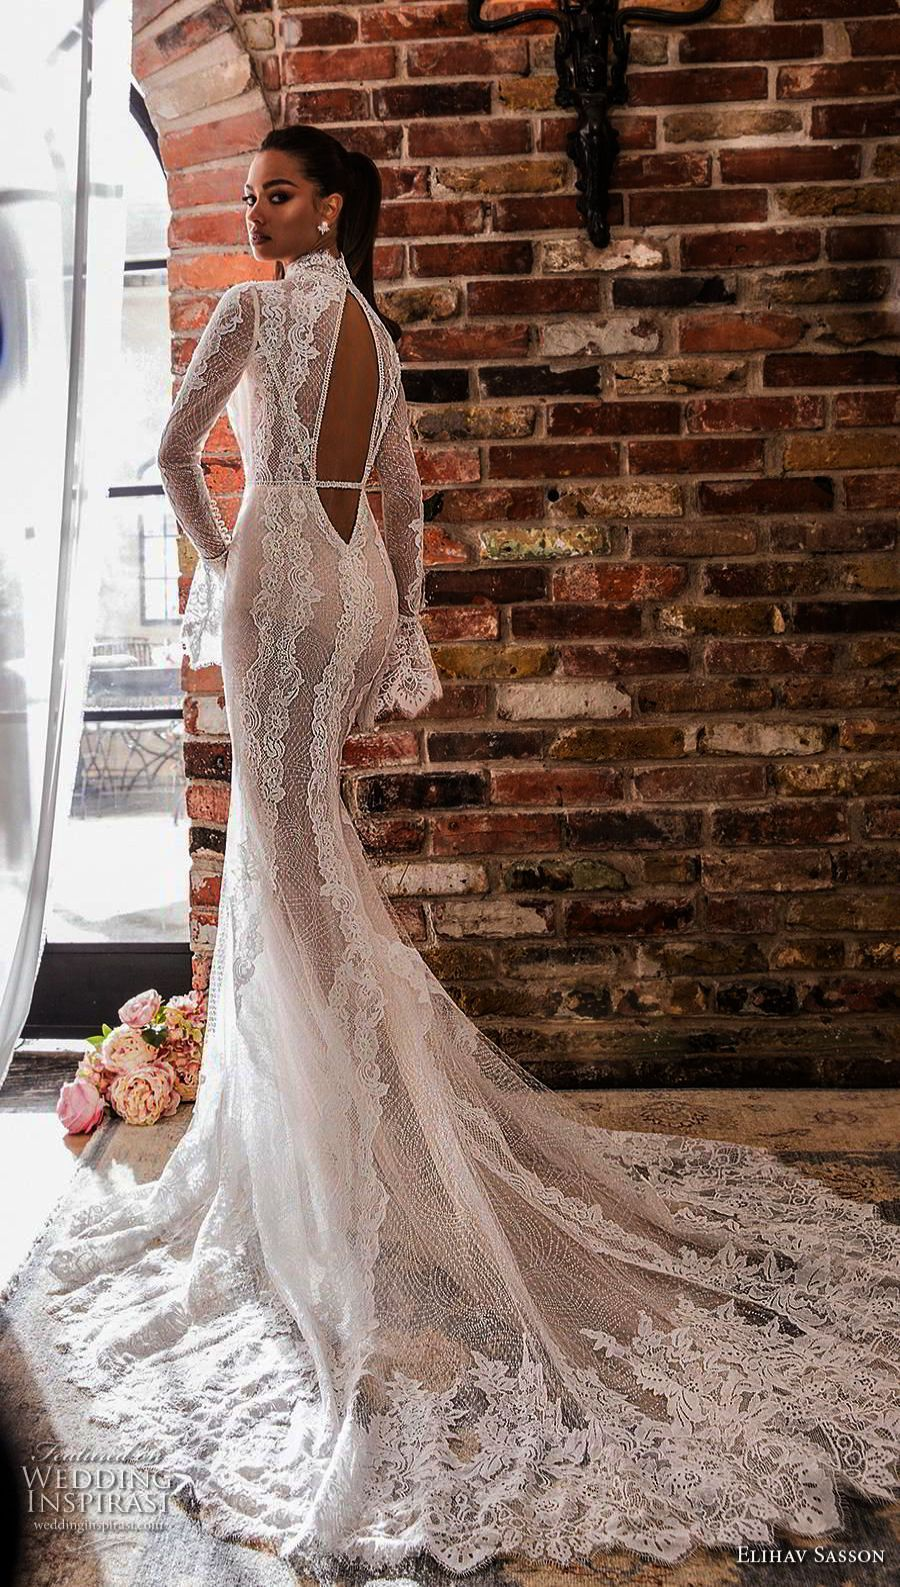 Plus Size Cocktail Dresses For Weddings Wedding Cakes New York